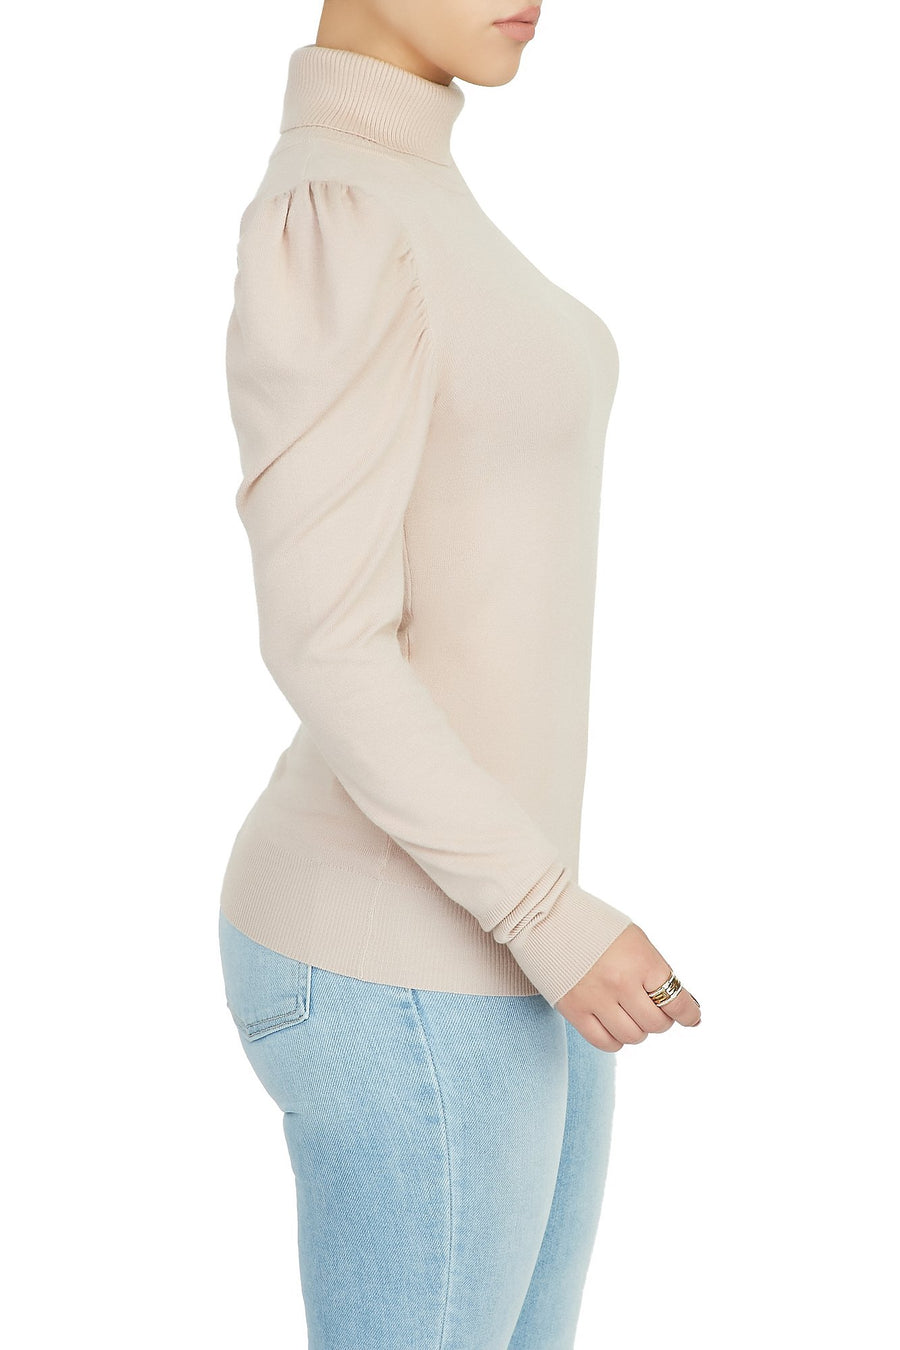 Puff Begone Knit Top (Pink)